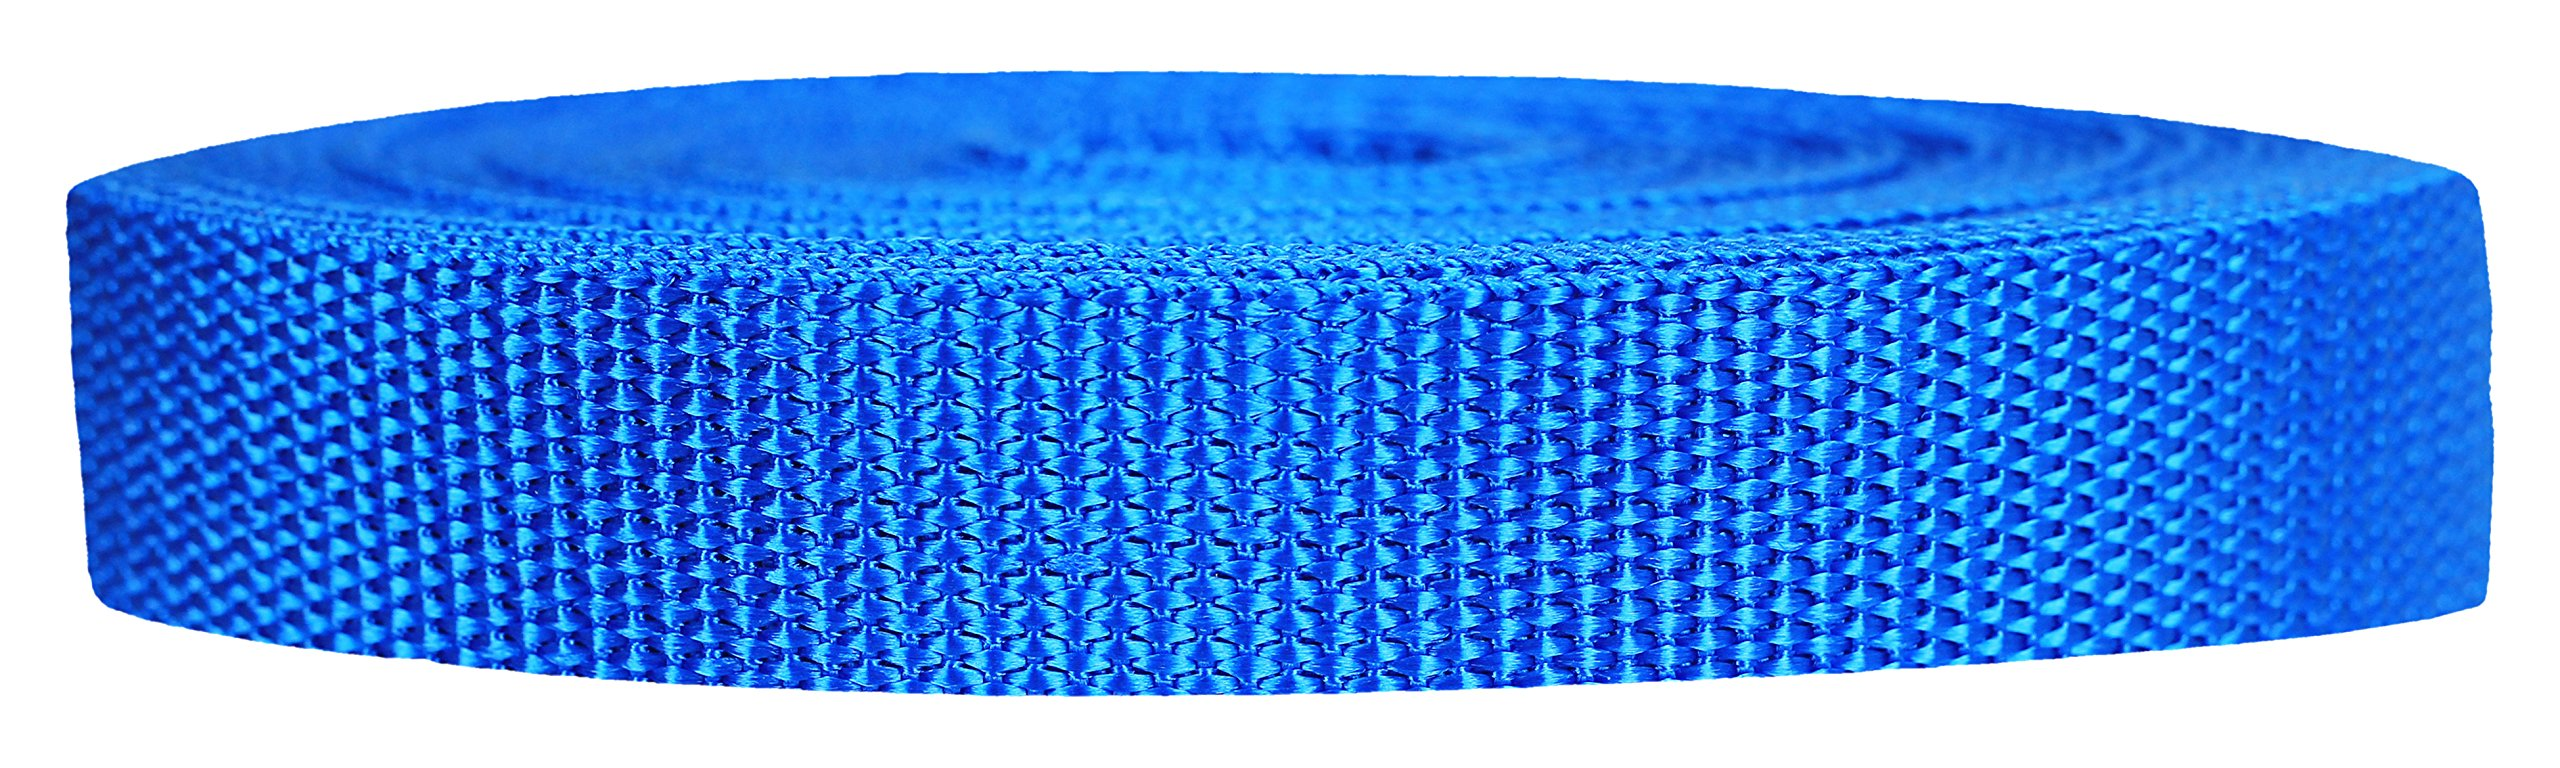 Strapworks Heavyweight Polypropylene Webbing - Heavy Duty Poly Strapping for Outdoor DIY Gear Repair, 3/4 Inch x 25 Yards, Pacific Blue by Strapworks